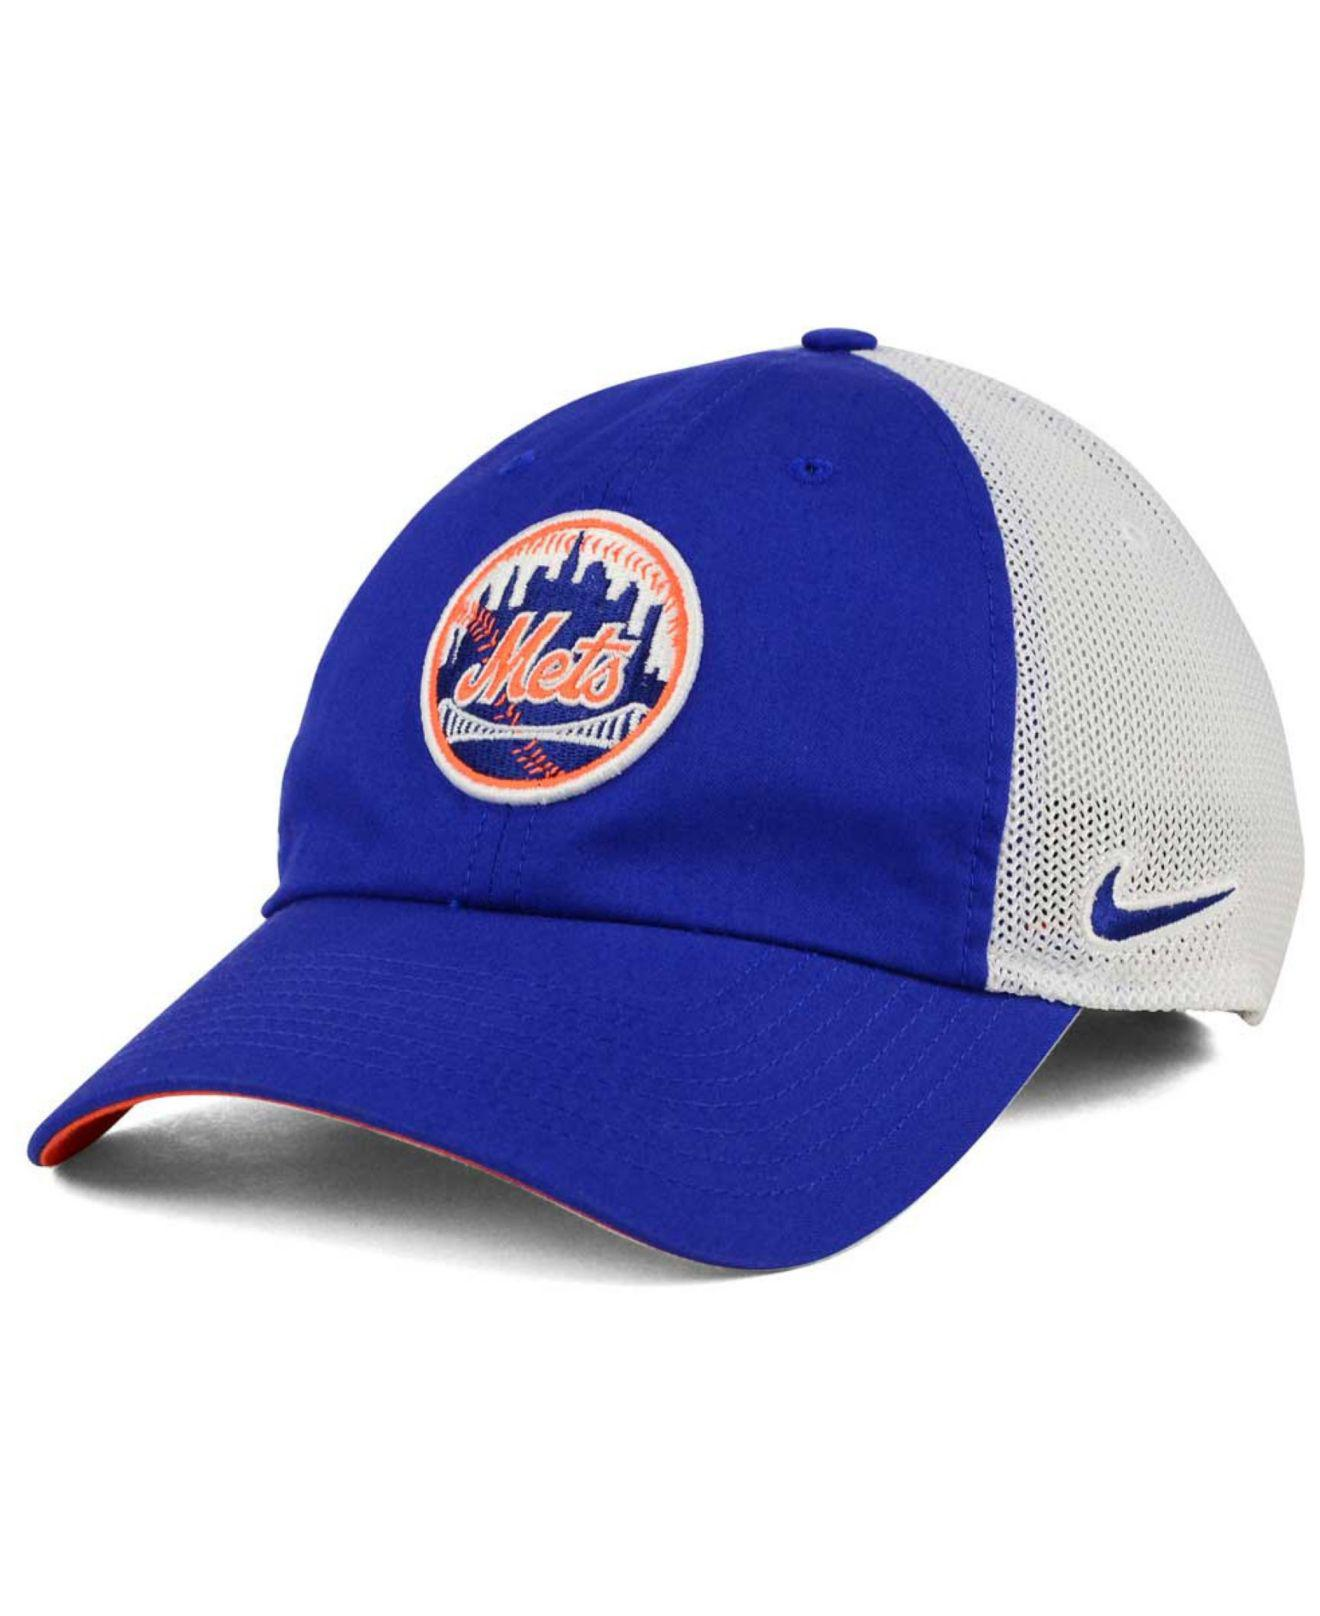 Lyst - Nike New York Mets Dri-fit Mesh Swoosh Adjustable Cap in Blue ... c74b8df8b6b1